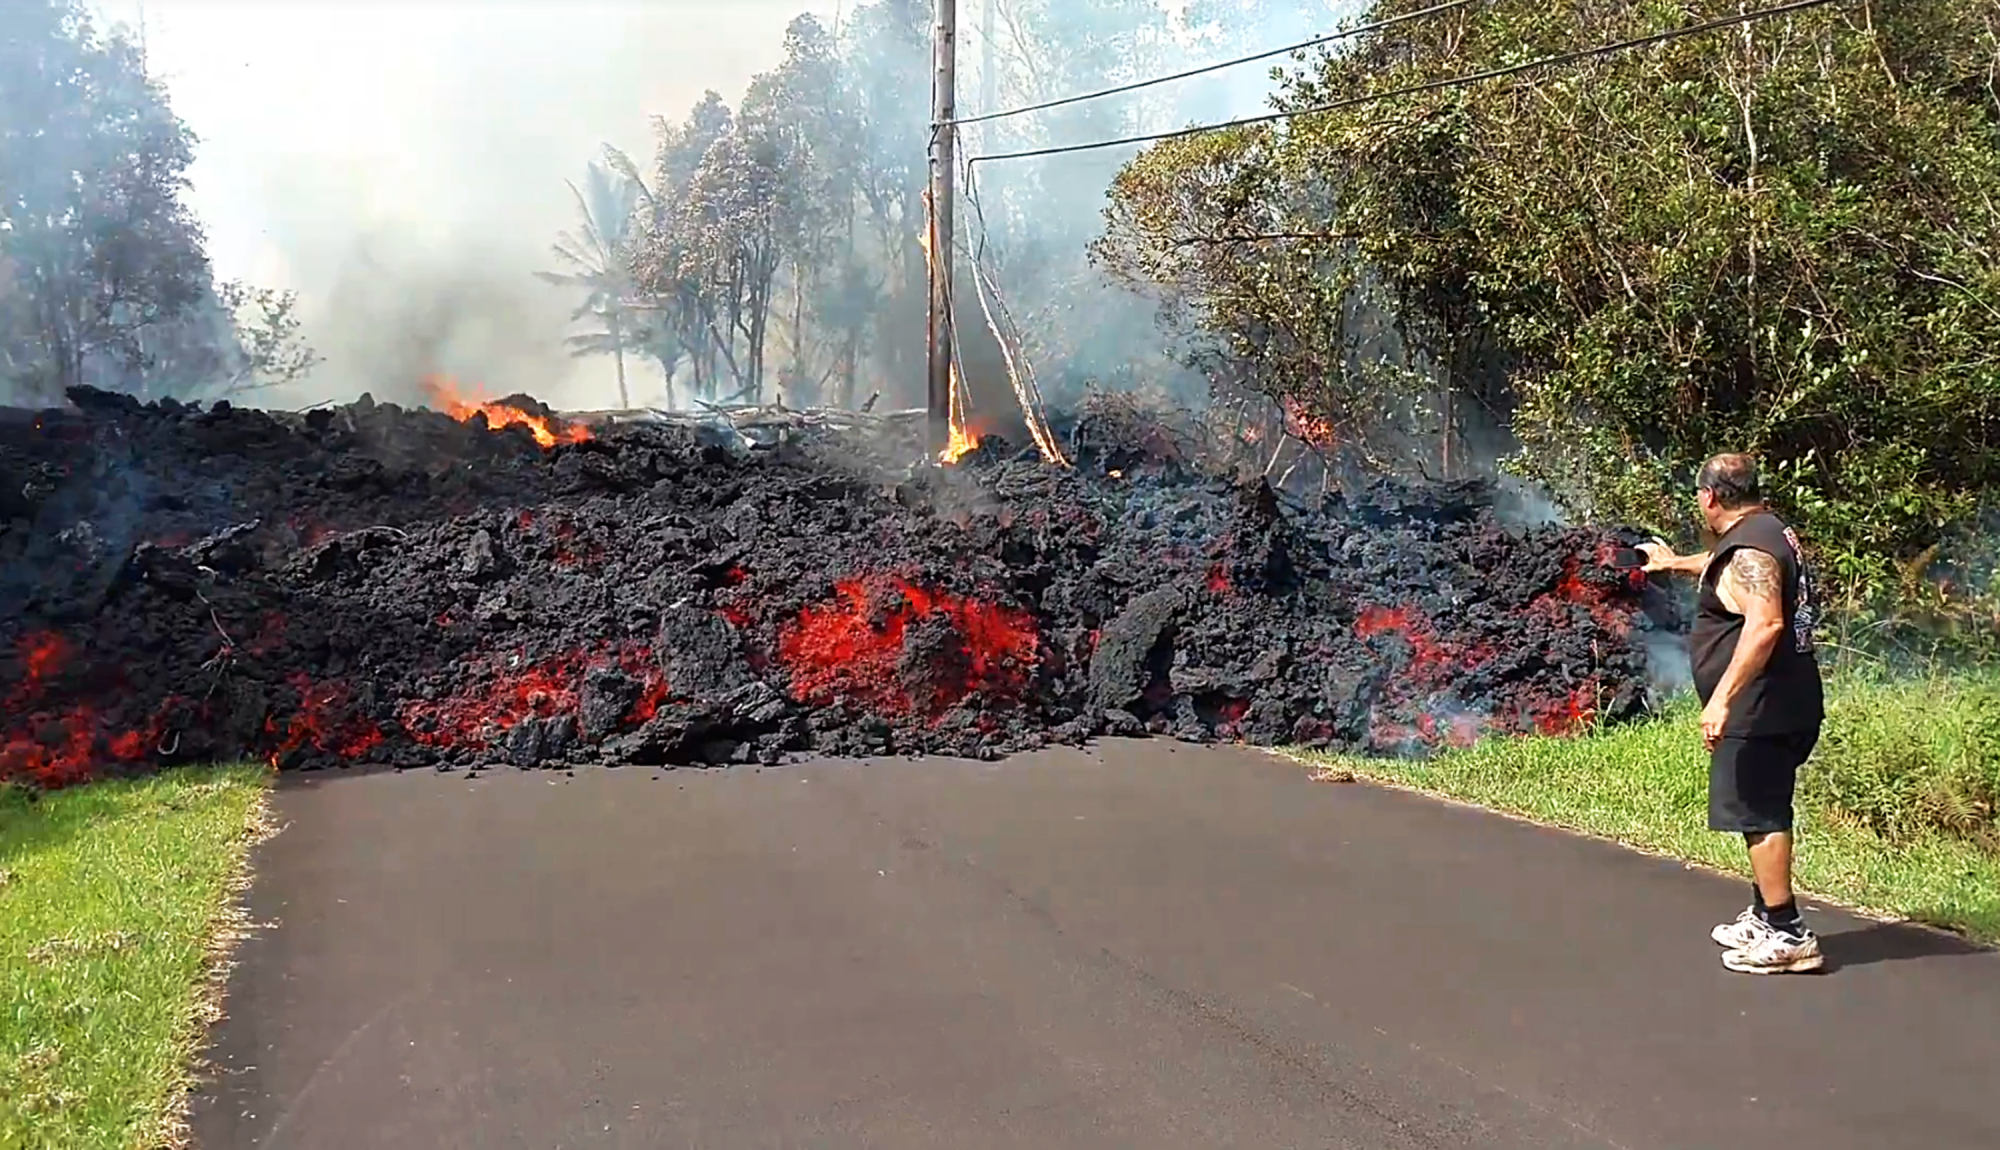 In this photo taken from video an unidentified man gets close to a lava flow advancing down a road in the Leilani Estates subdivision near Pahoa on the island of Hawaii Monday. Kilauea volcano has destroyed more than two dozen homes since it began spewing lava hundreds of feet into the air last week, and residents who evacuated don't know how long they might be displaced. The decimated homes were in the Leilani Estates subdivision, where molten rock, toxic gas and steam have been bursting through openings in the ground created by the volcano. | SCOTT WIGGERS / APAU HAWAII TOURS / VIA AP